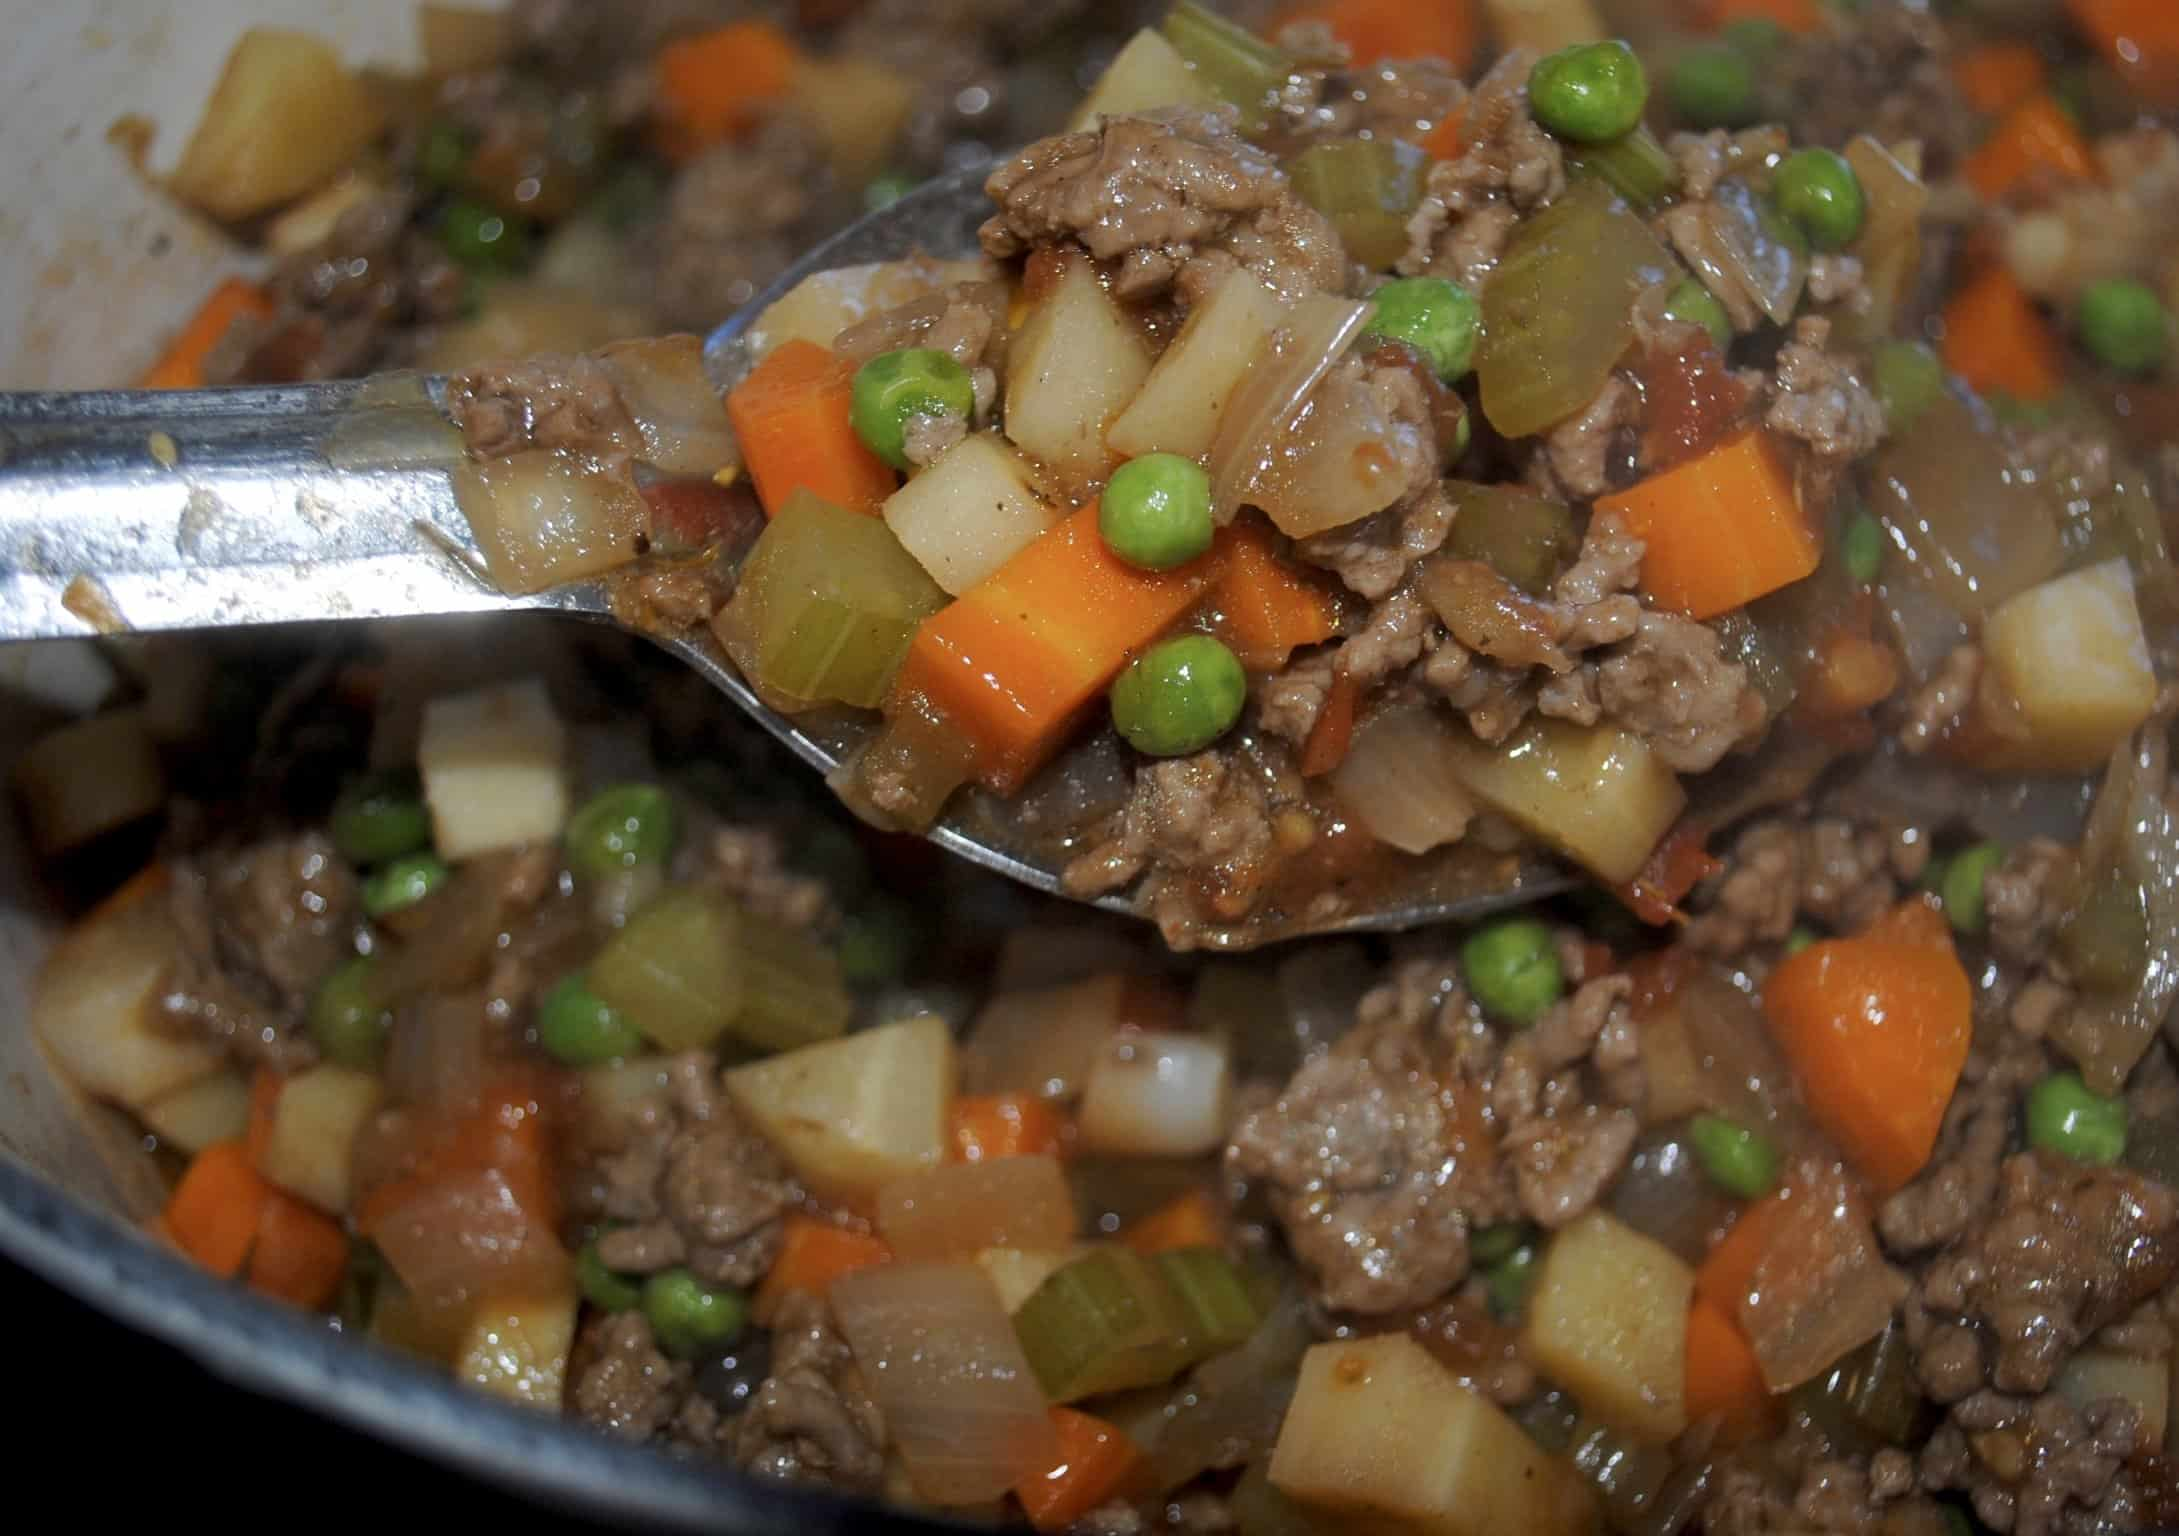 shepherds pie - mixture thickened and displayed on a silver spoon